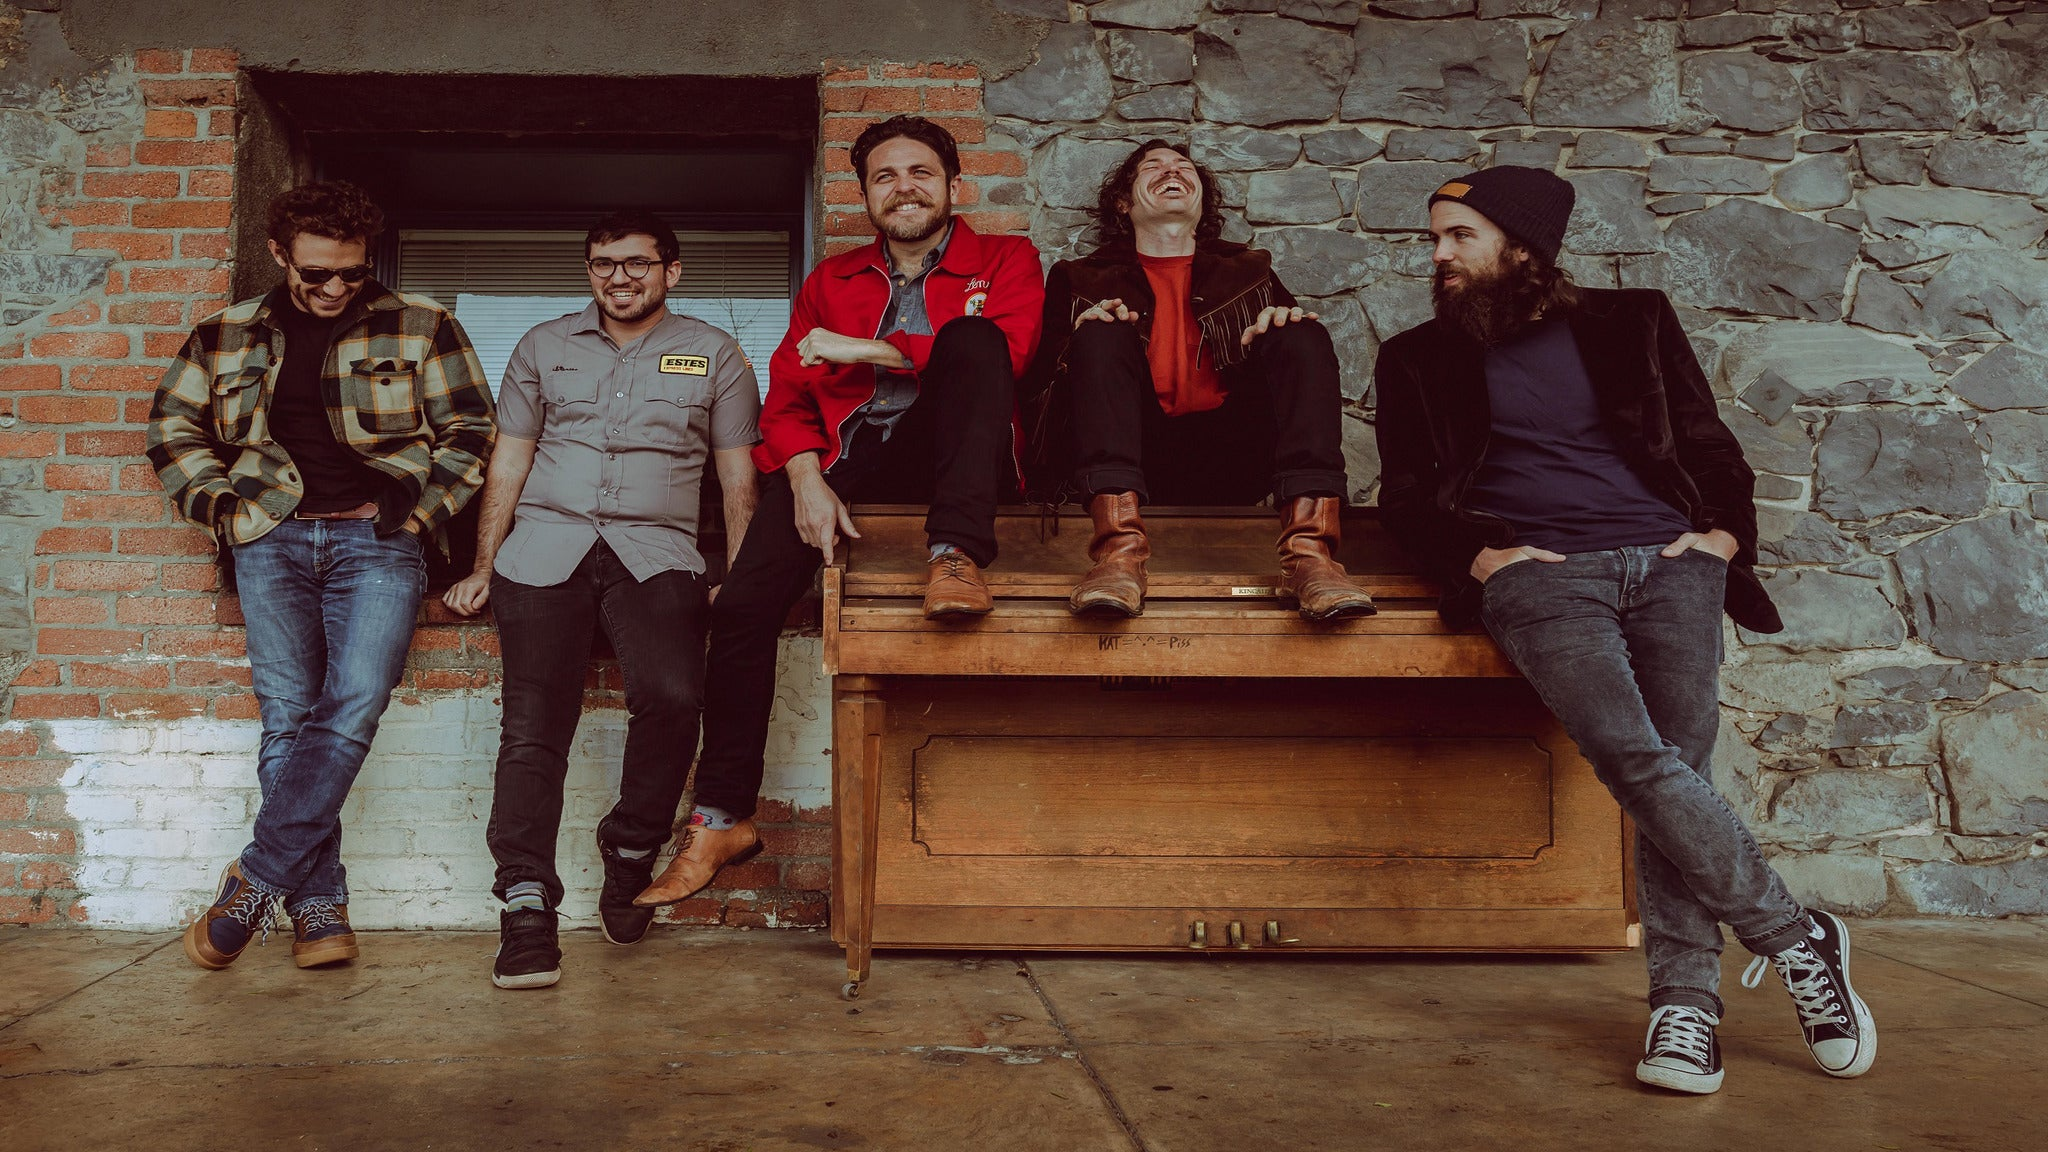 91.3 KBCS Presents: The Brothers Comatose w/ Goodnight, Texas